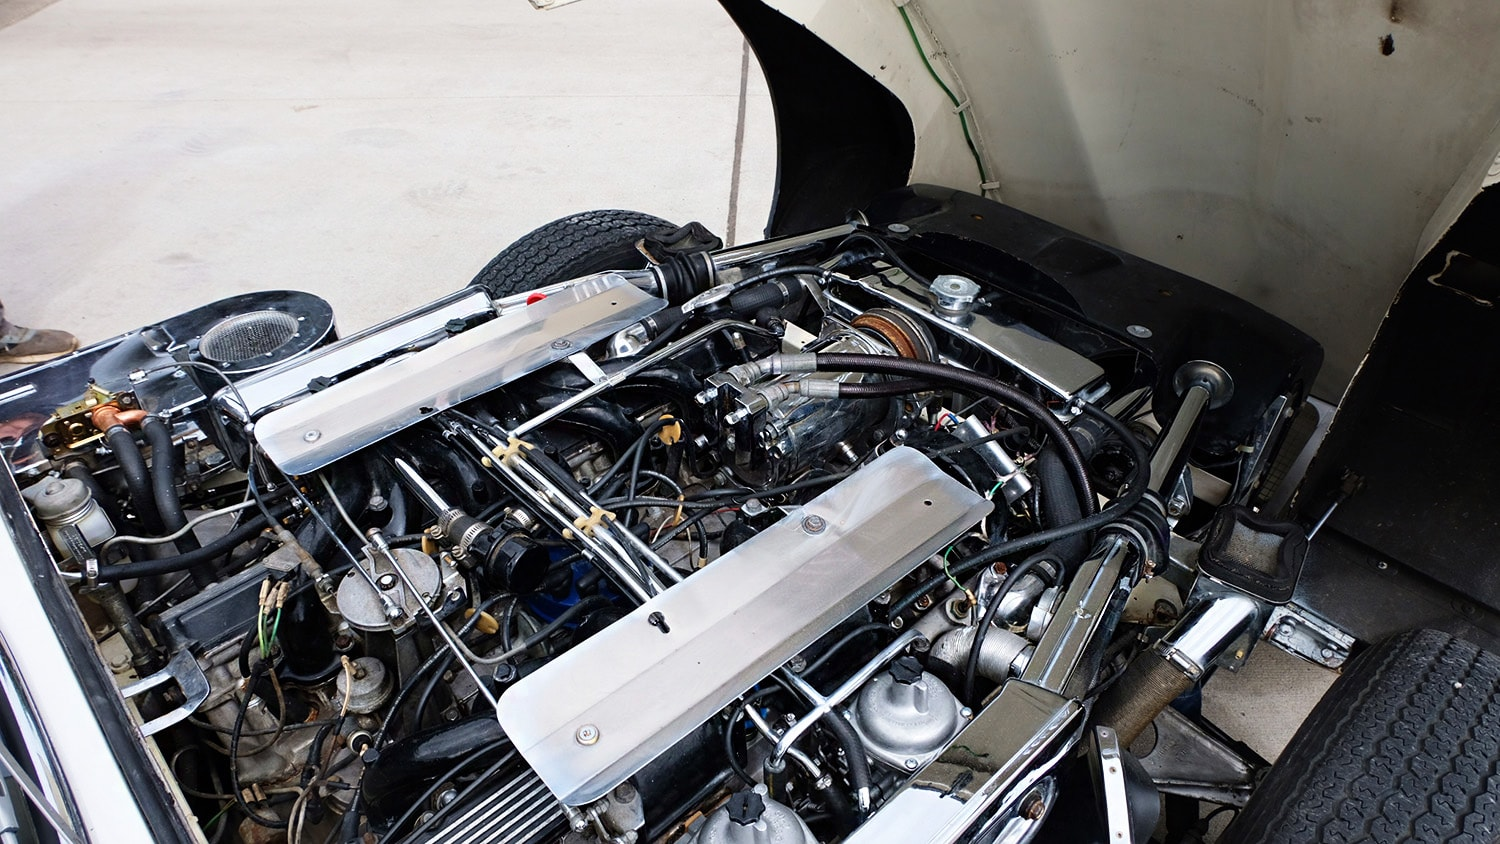 1972 Jaguar XKE Convertible V12 Engine.JPG